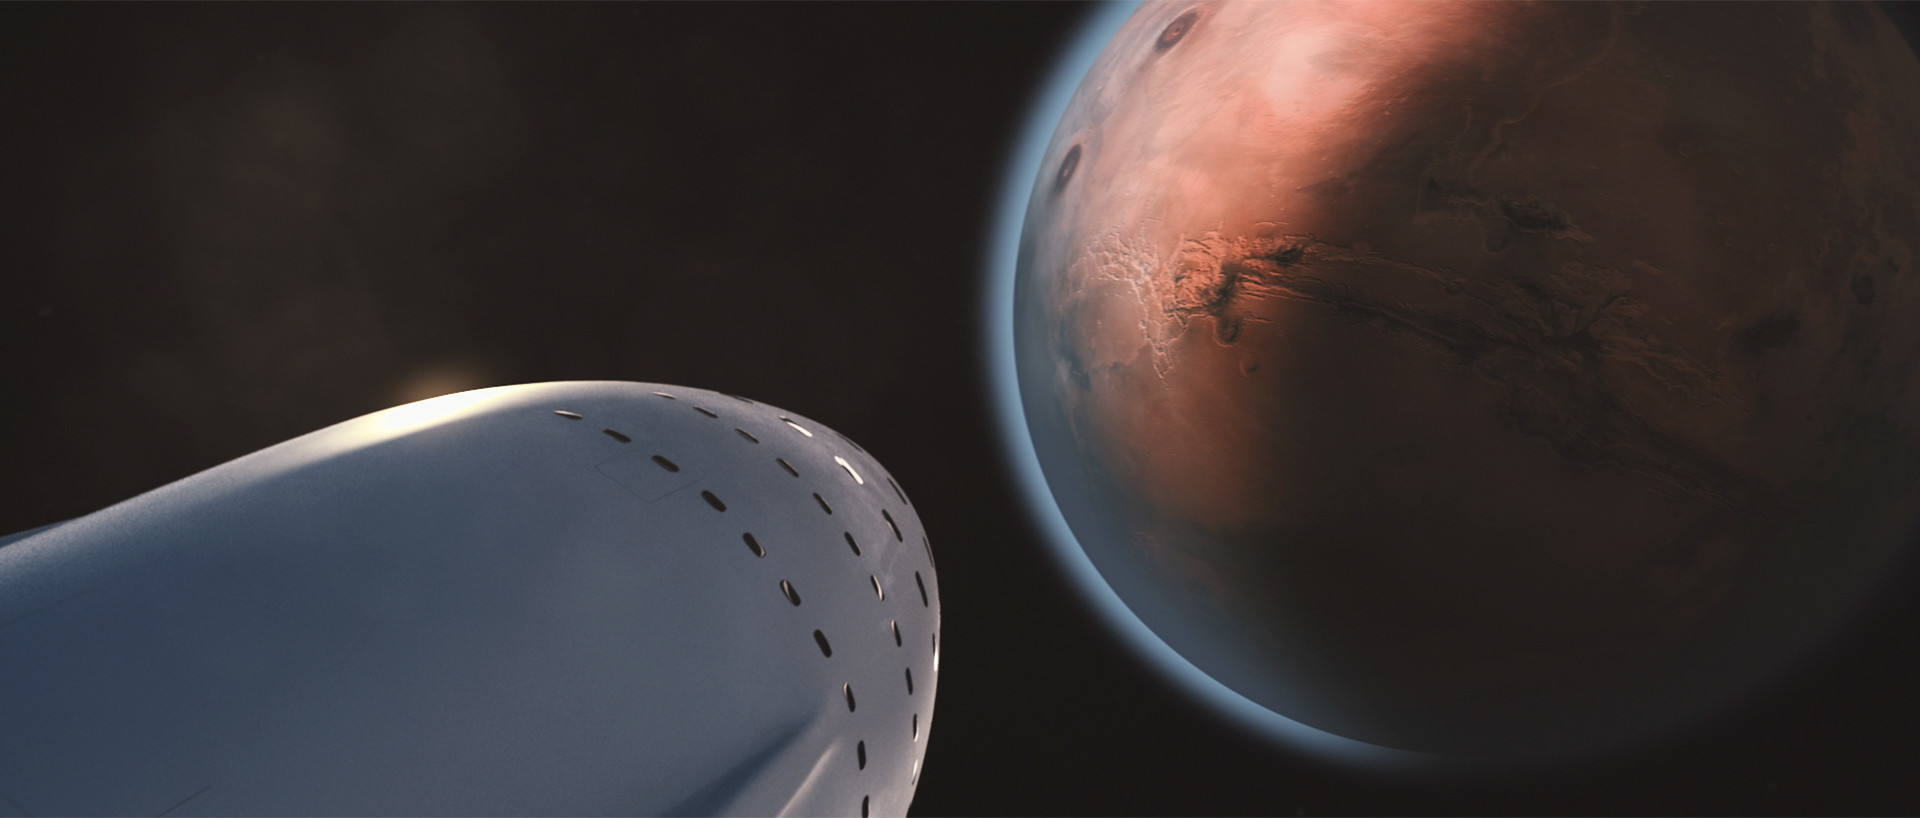 SpaceX will need to send many, many ships to settle Mars.